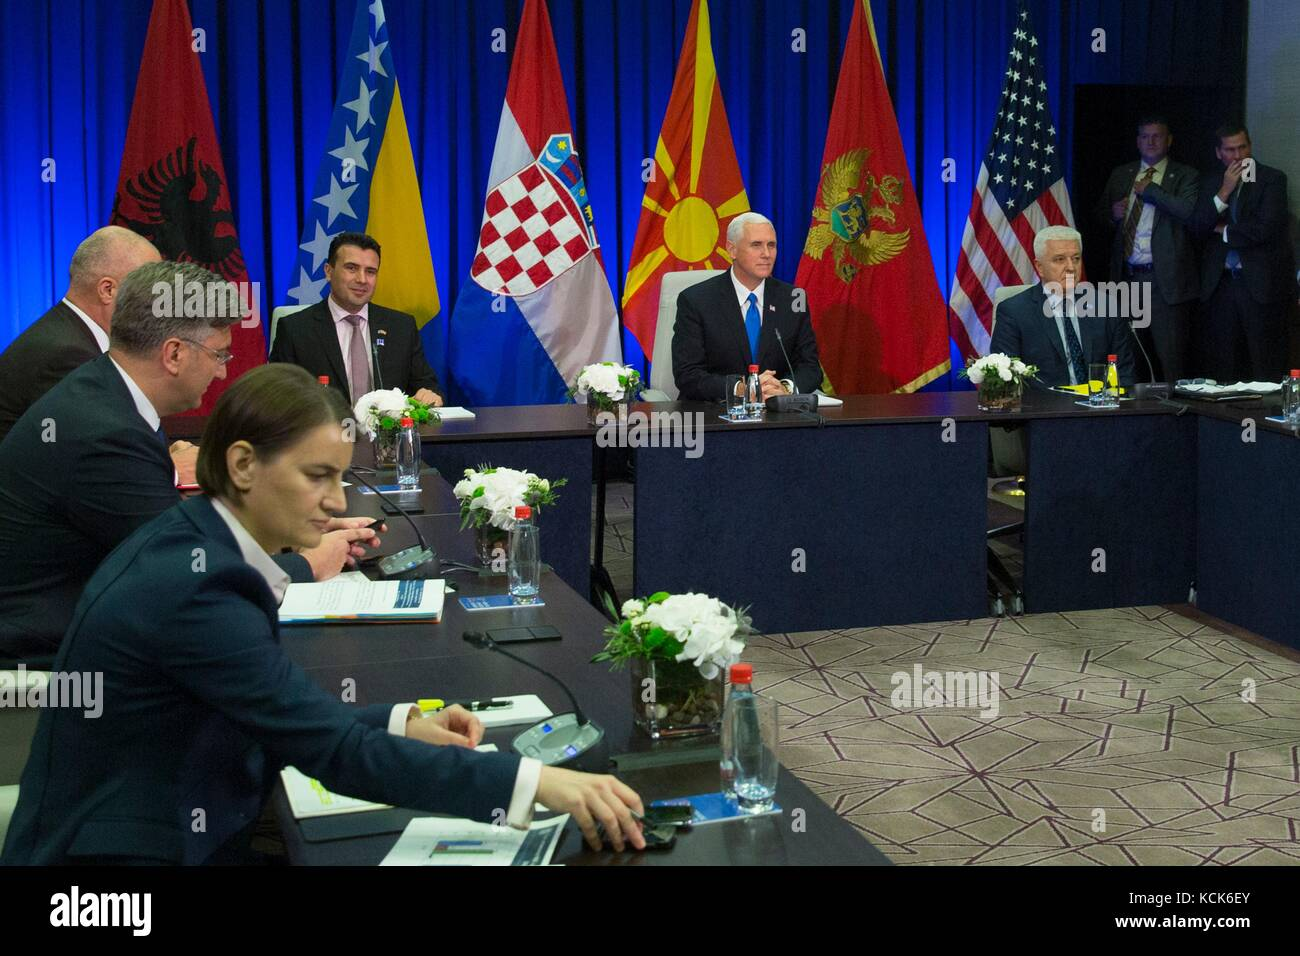 U.S. Vice President Mike Pence meets with Adriatic leaders during the Adriatic Charter Summit at the Hilton Podgorica - Stock Image